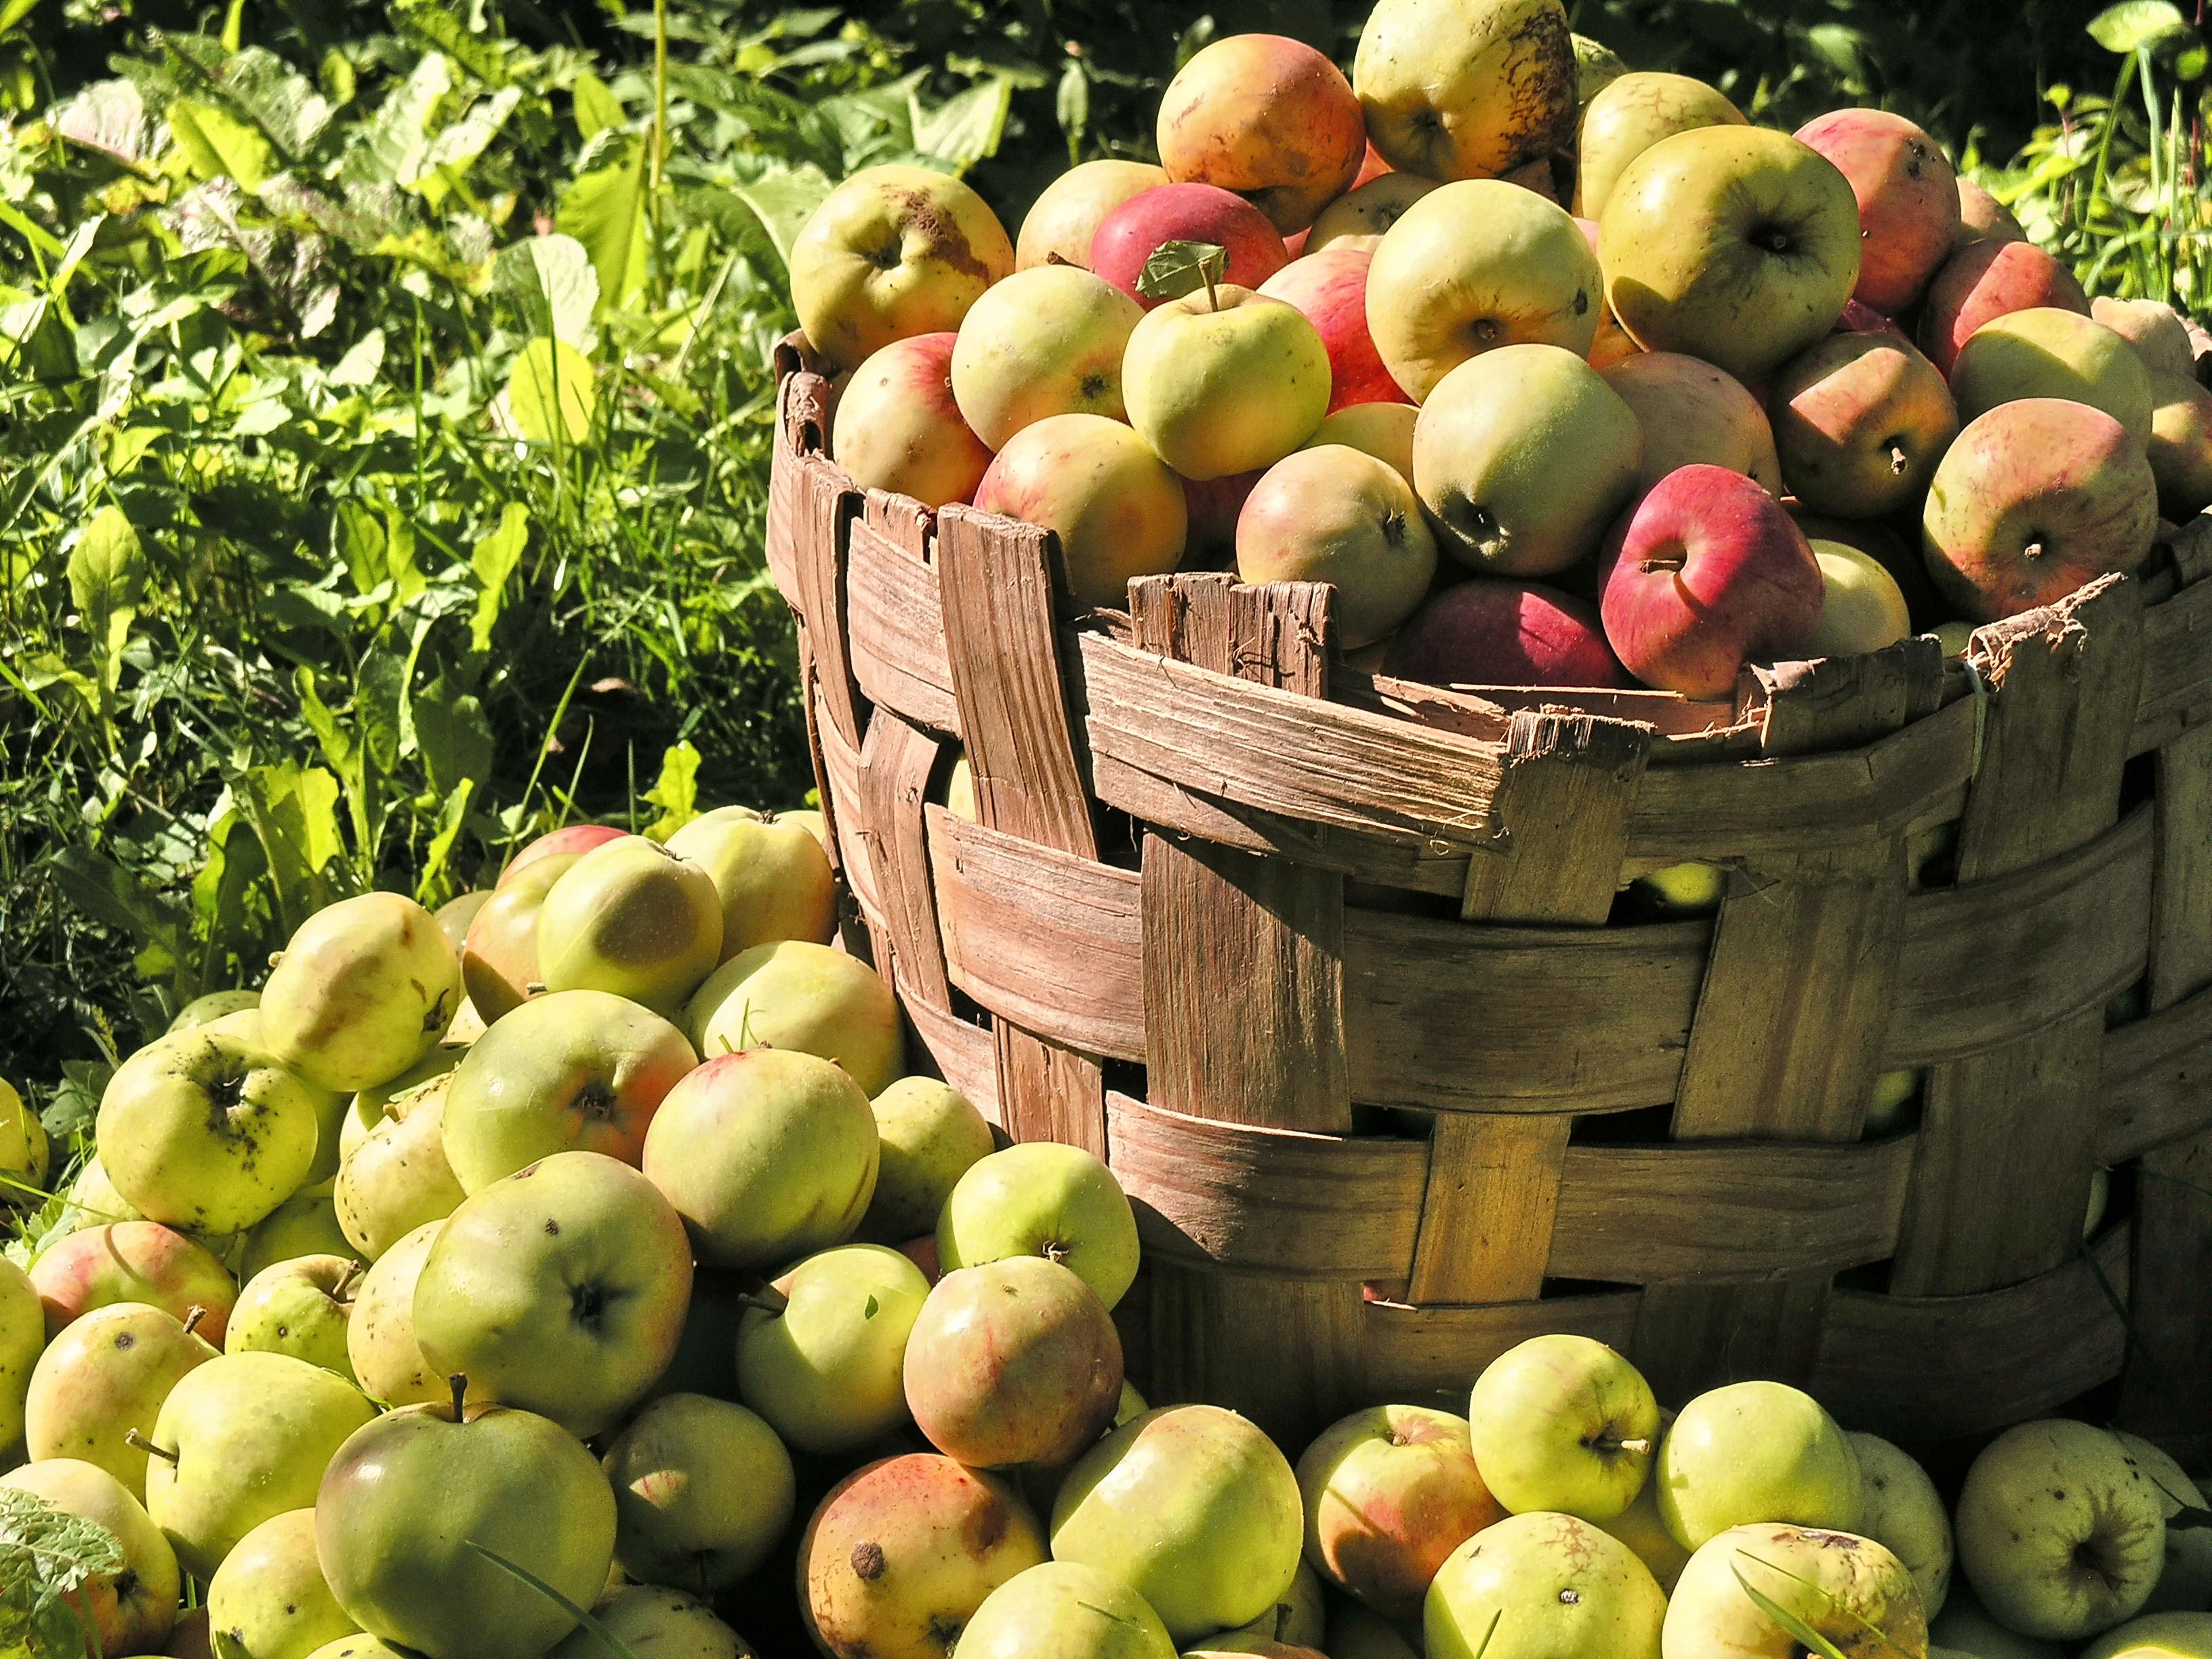 The fruit of the gods apple magical properties and uses the fruit of the gods apple magical properties and uses magical herbs biocorpaavc